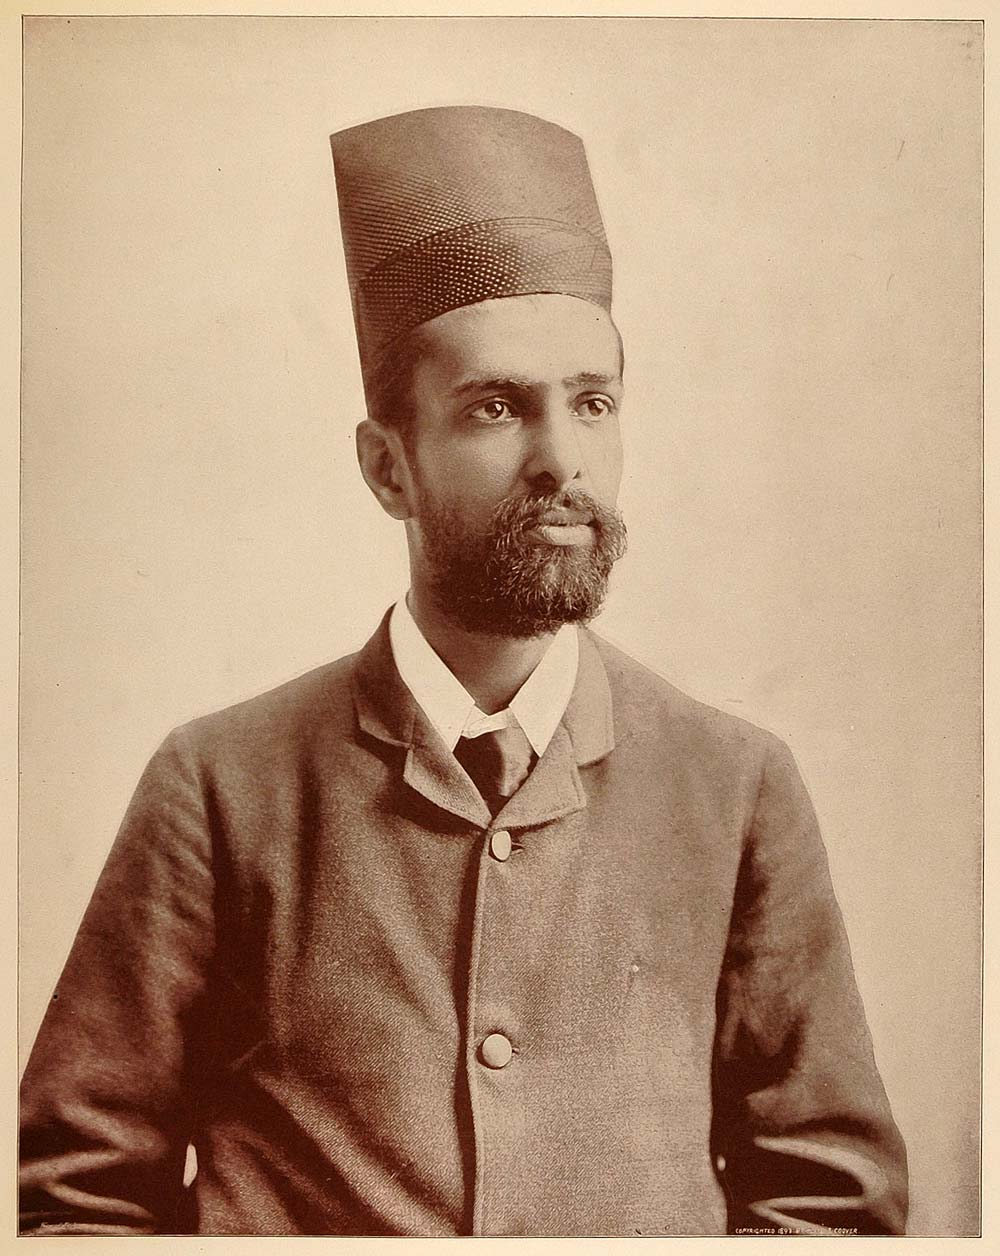 1893 Chicago Worlds Fair Portrait Parsi East Indian Merchant Man Historic Image